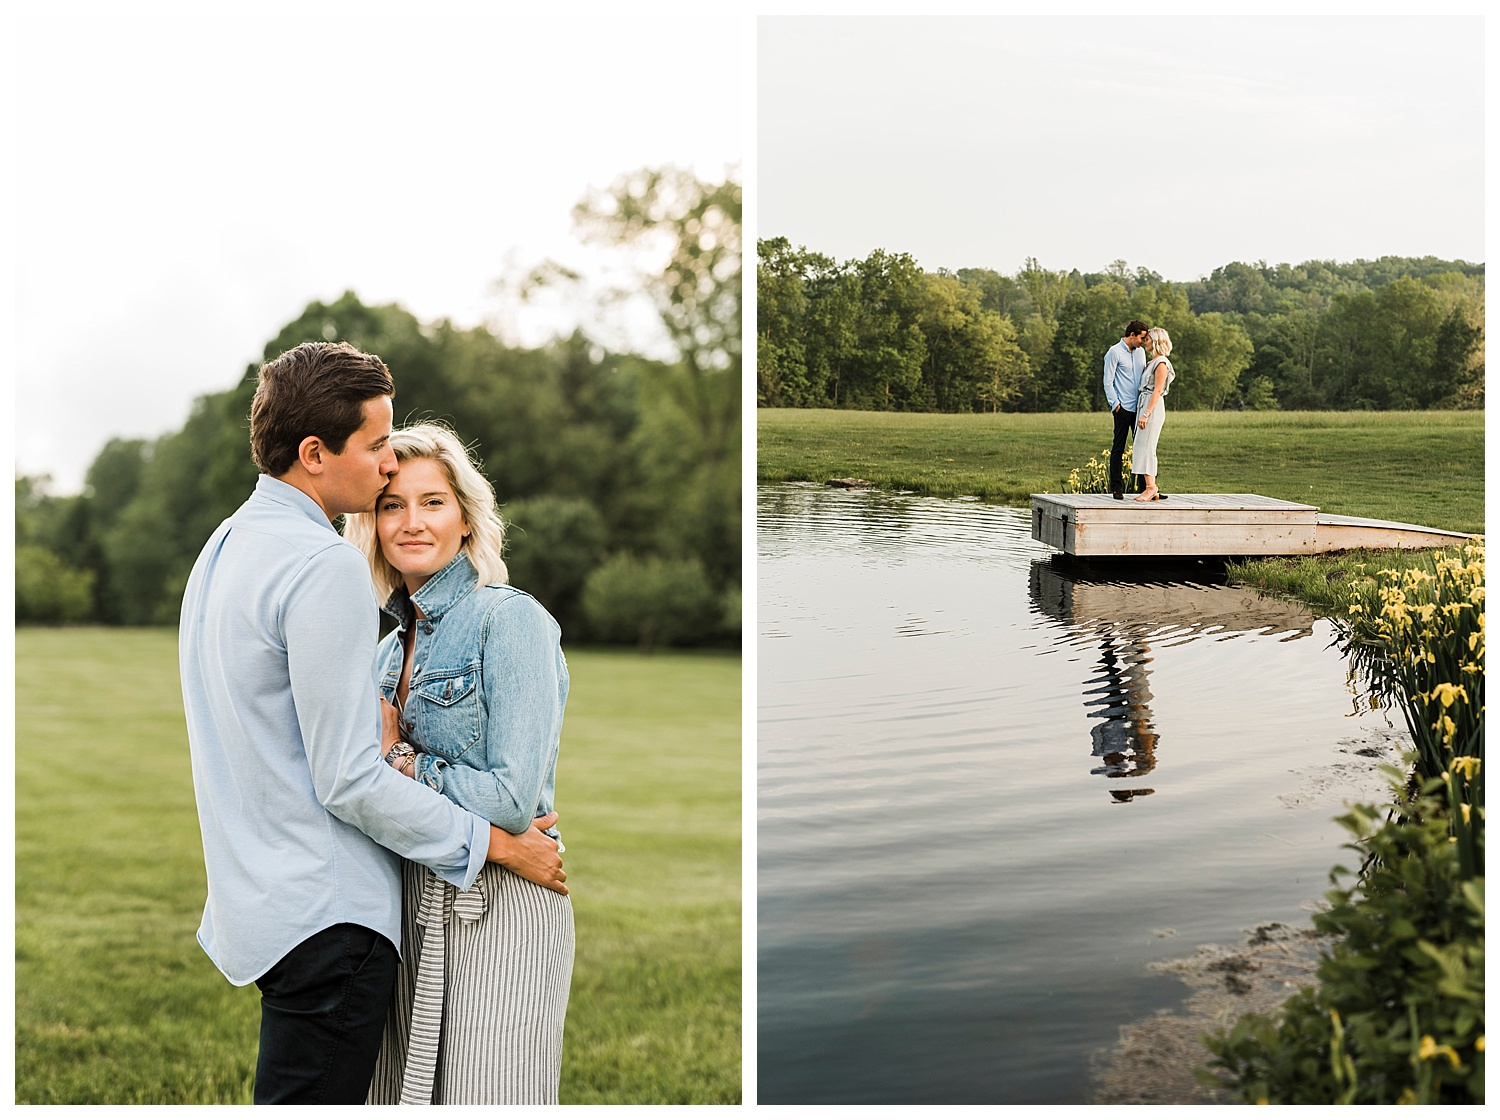 Hunterdon_County_Engagement_Session_Apollo_Fields06.jpg